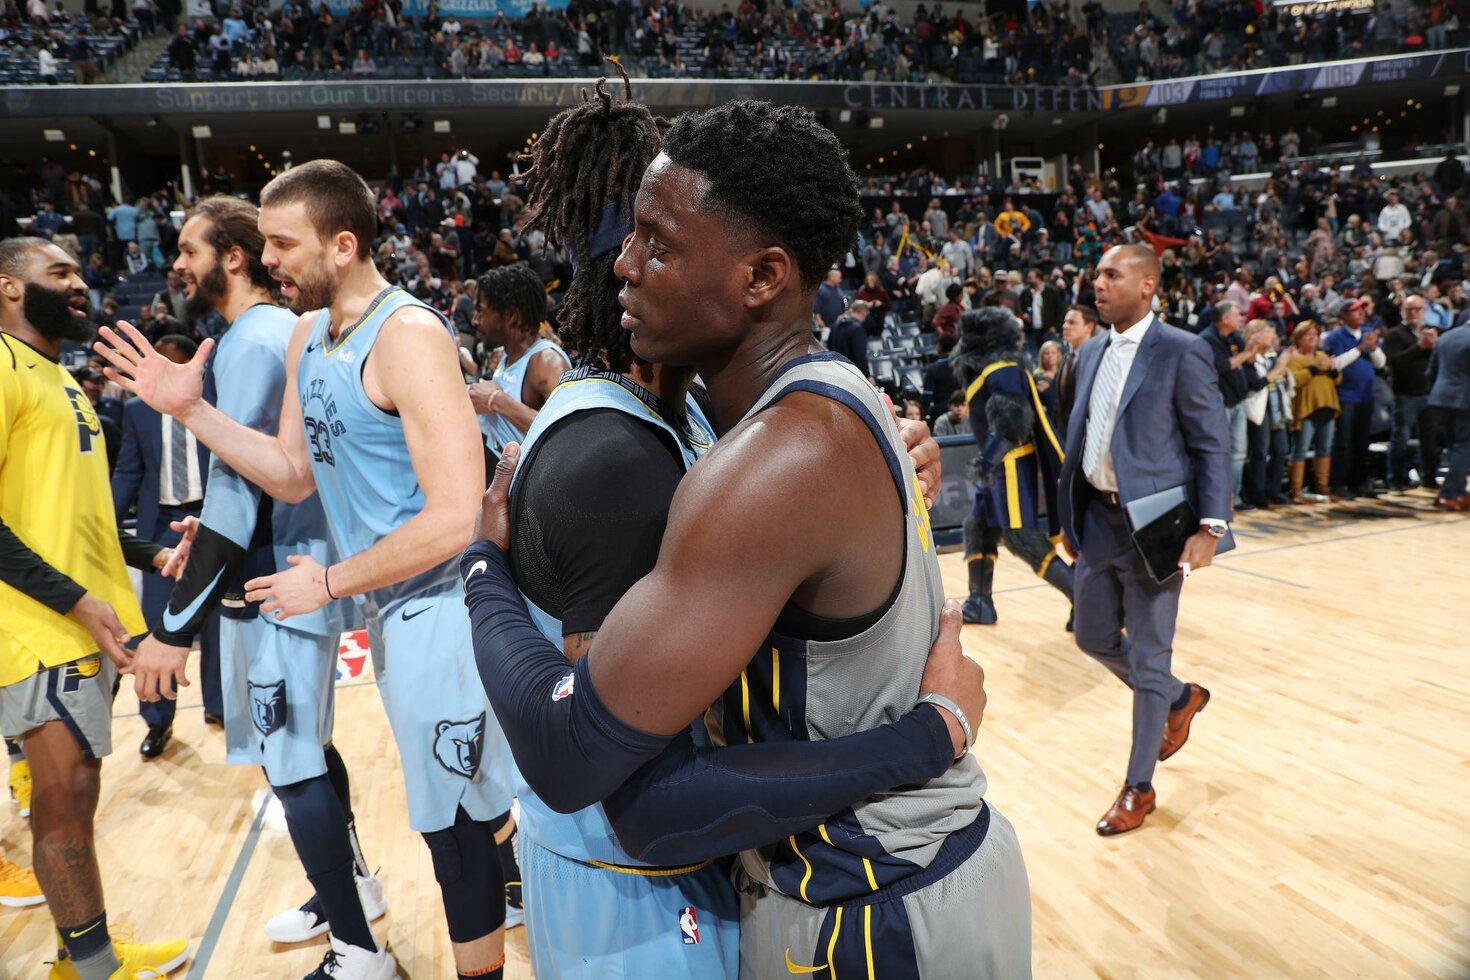 MEMPHIS, TN - JANUARY 26:  Mike Conley #11 of the Memphis Grizzlies and Darren Collison #2 of the Indiana Pacers hug after the game on January 26, 2019 at FedExForum in Memphis, Tennessee.